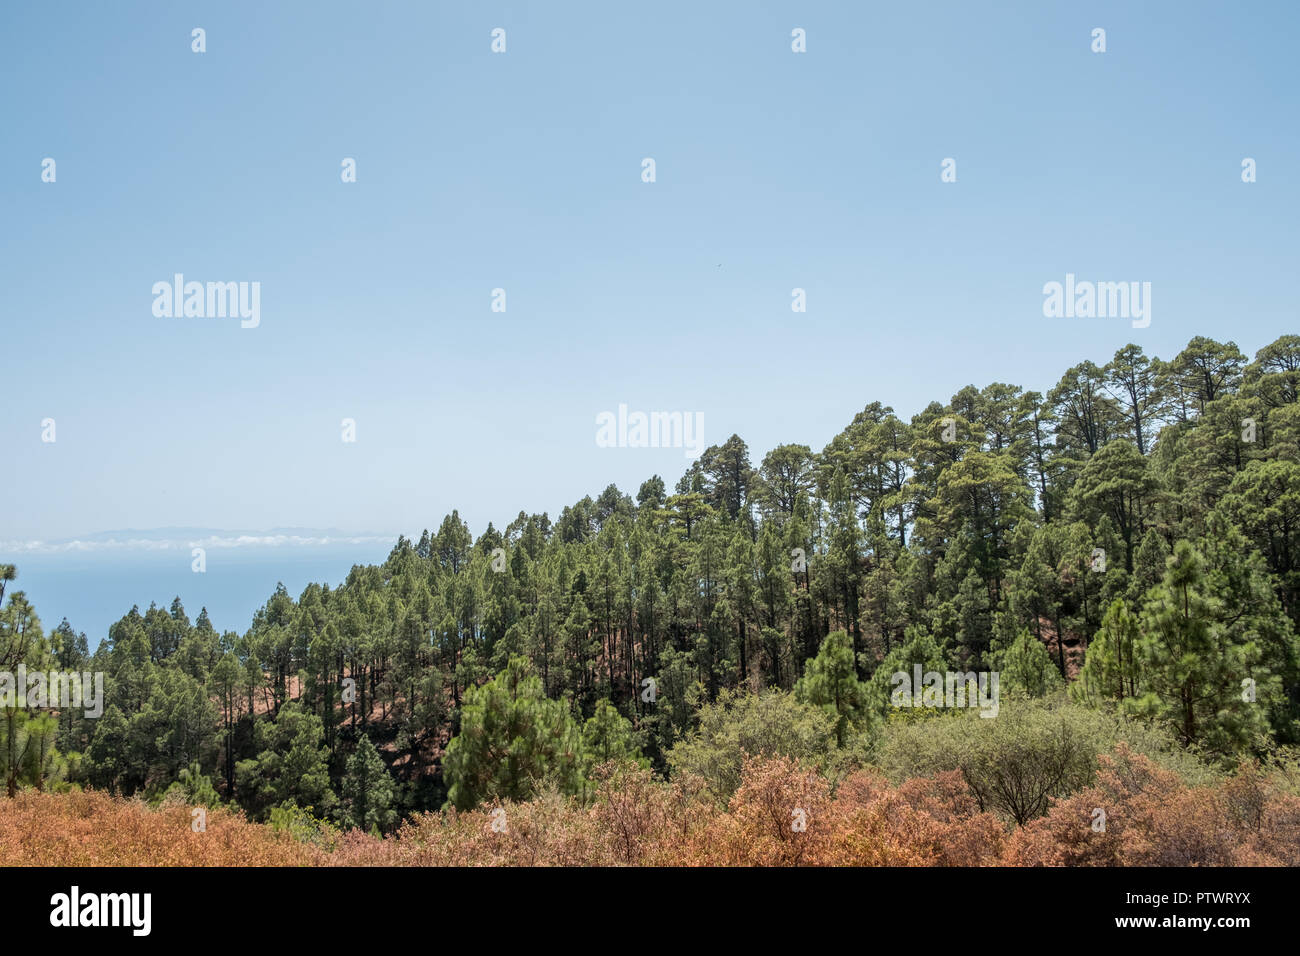 conifer forest landscape and blue sky copy space, - Stock Image